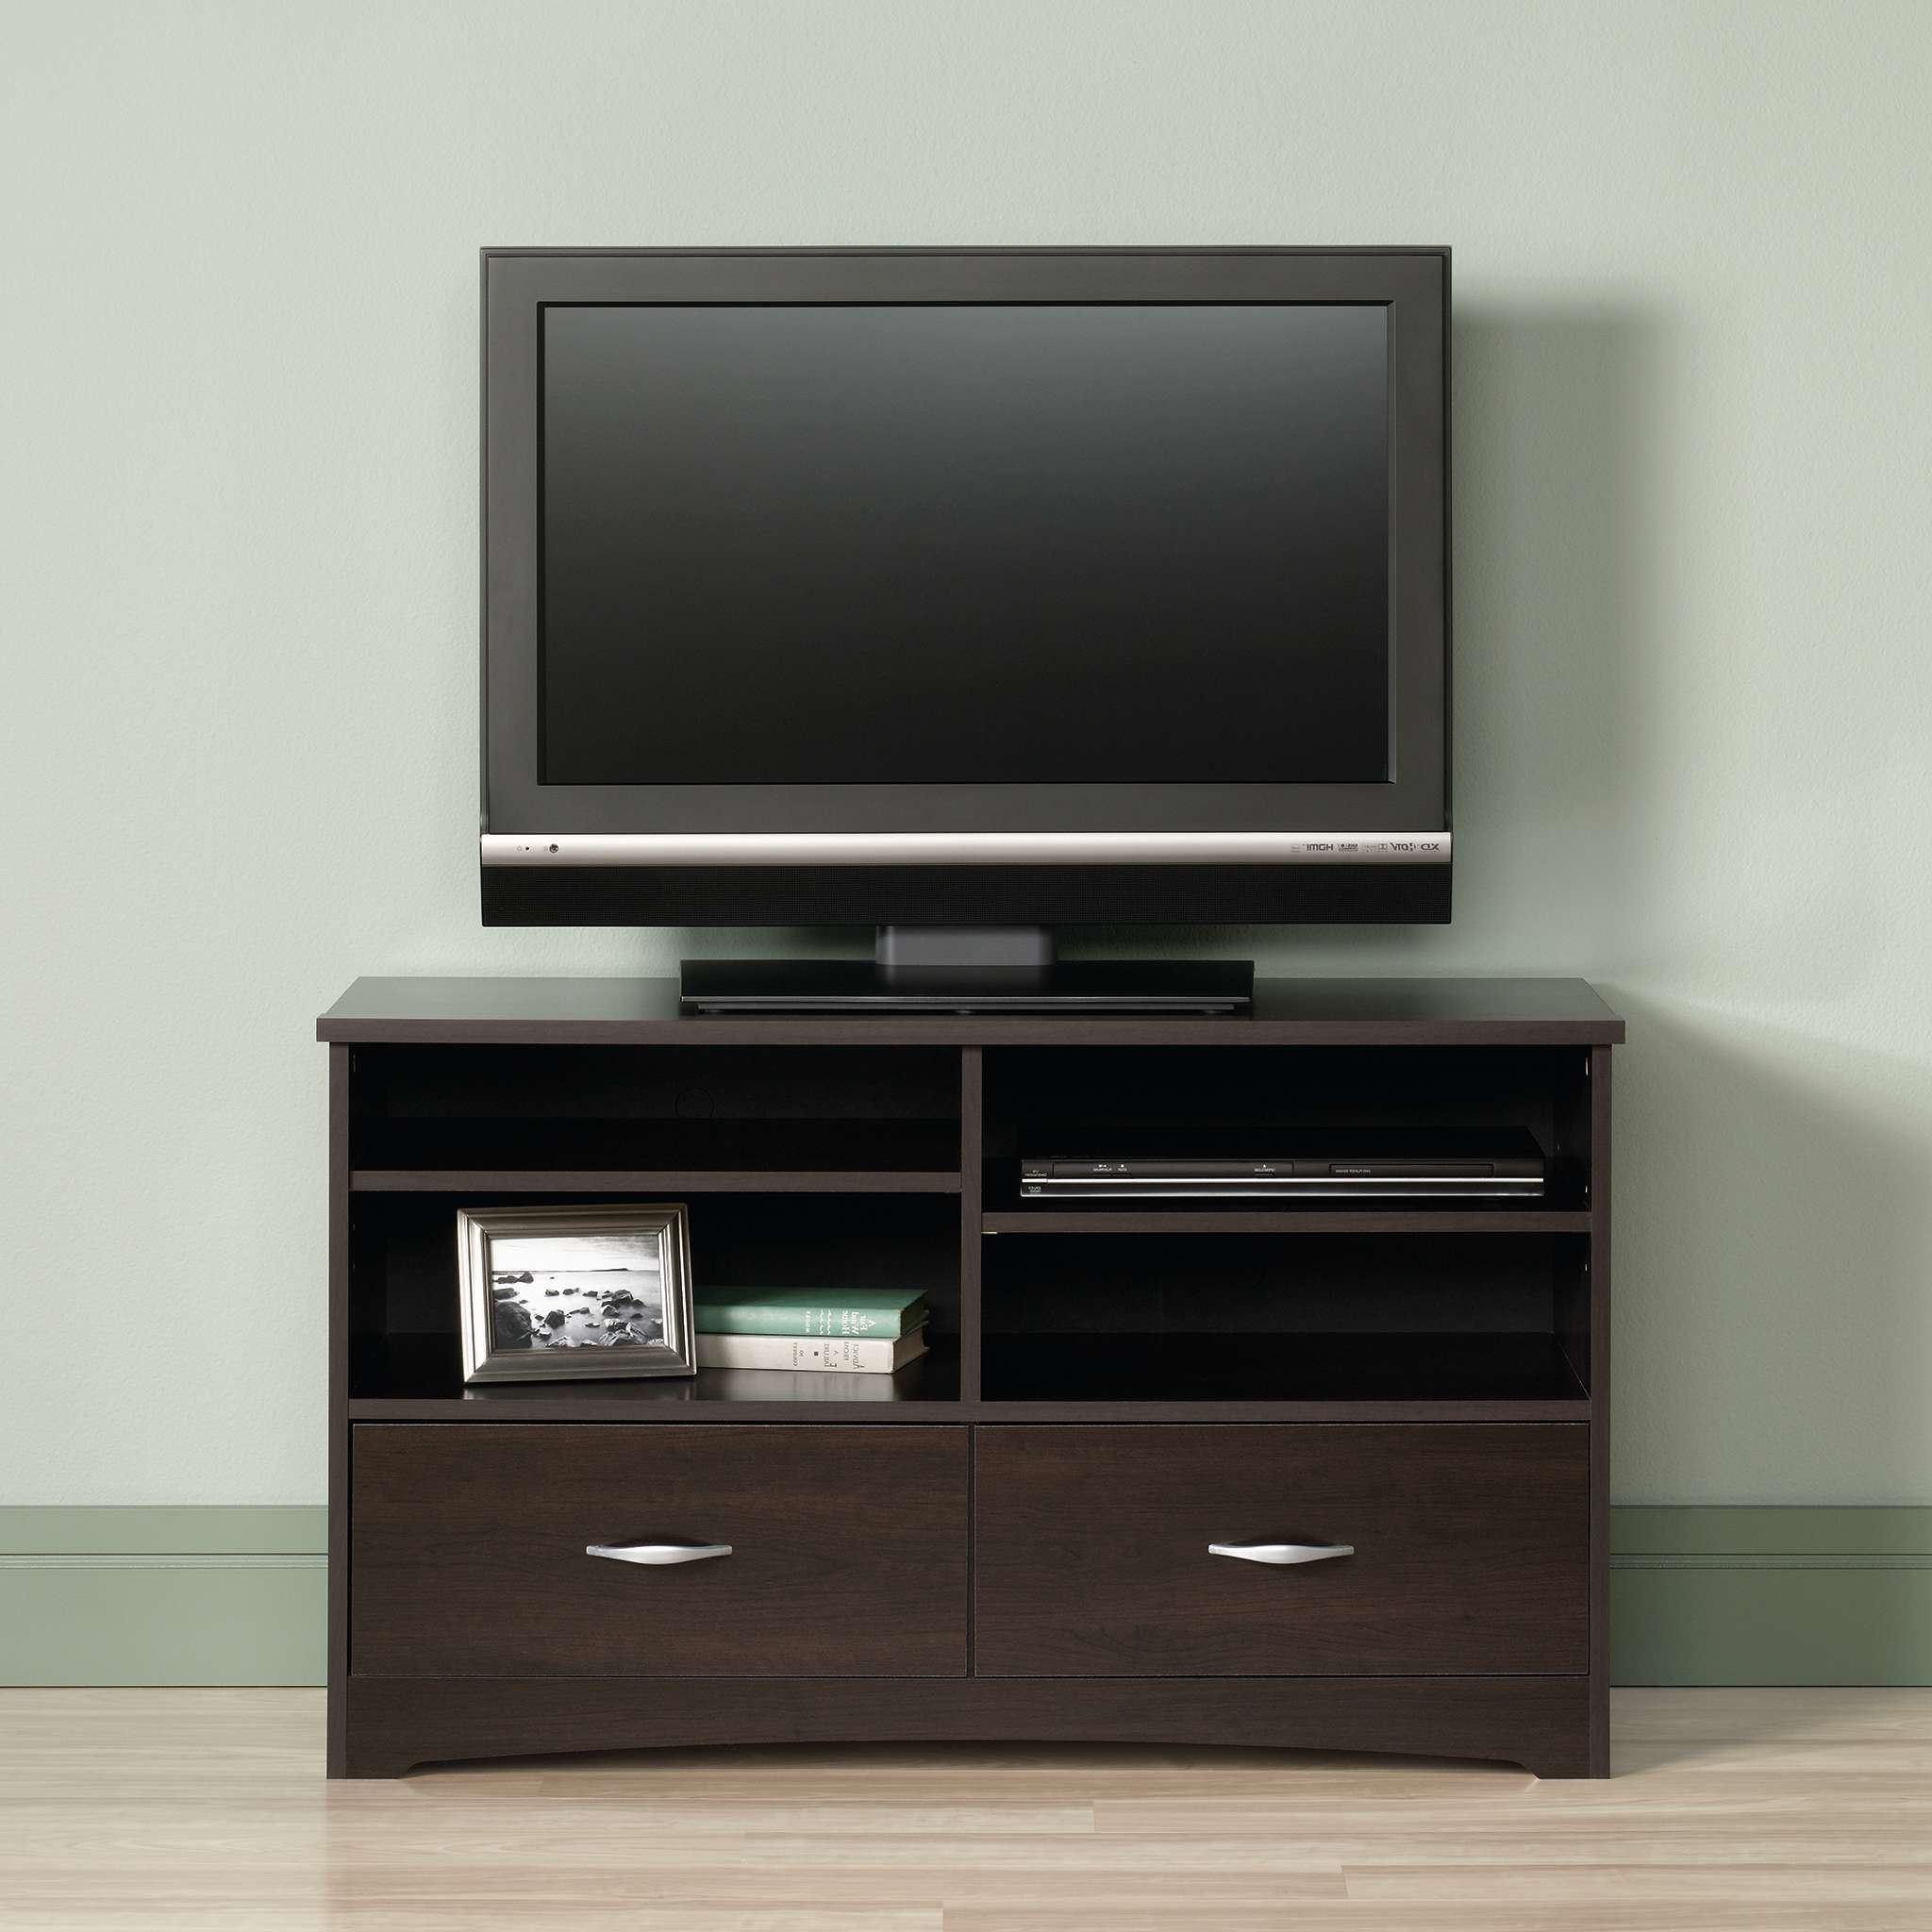 Sauder Tv Stands Pertaining To Stand And Deliver Tv Stands (View 11 of 20)